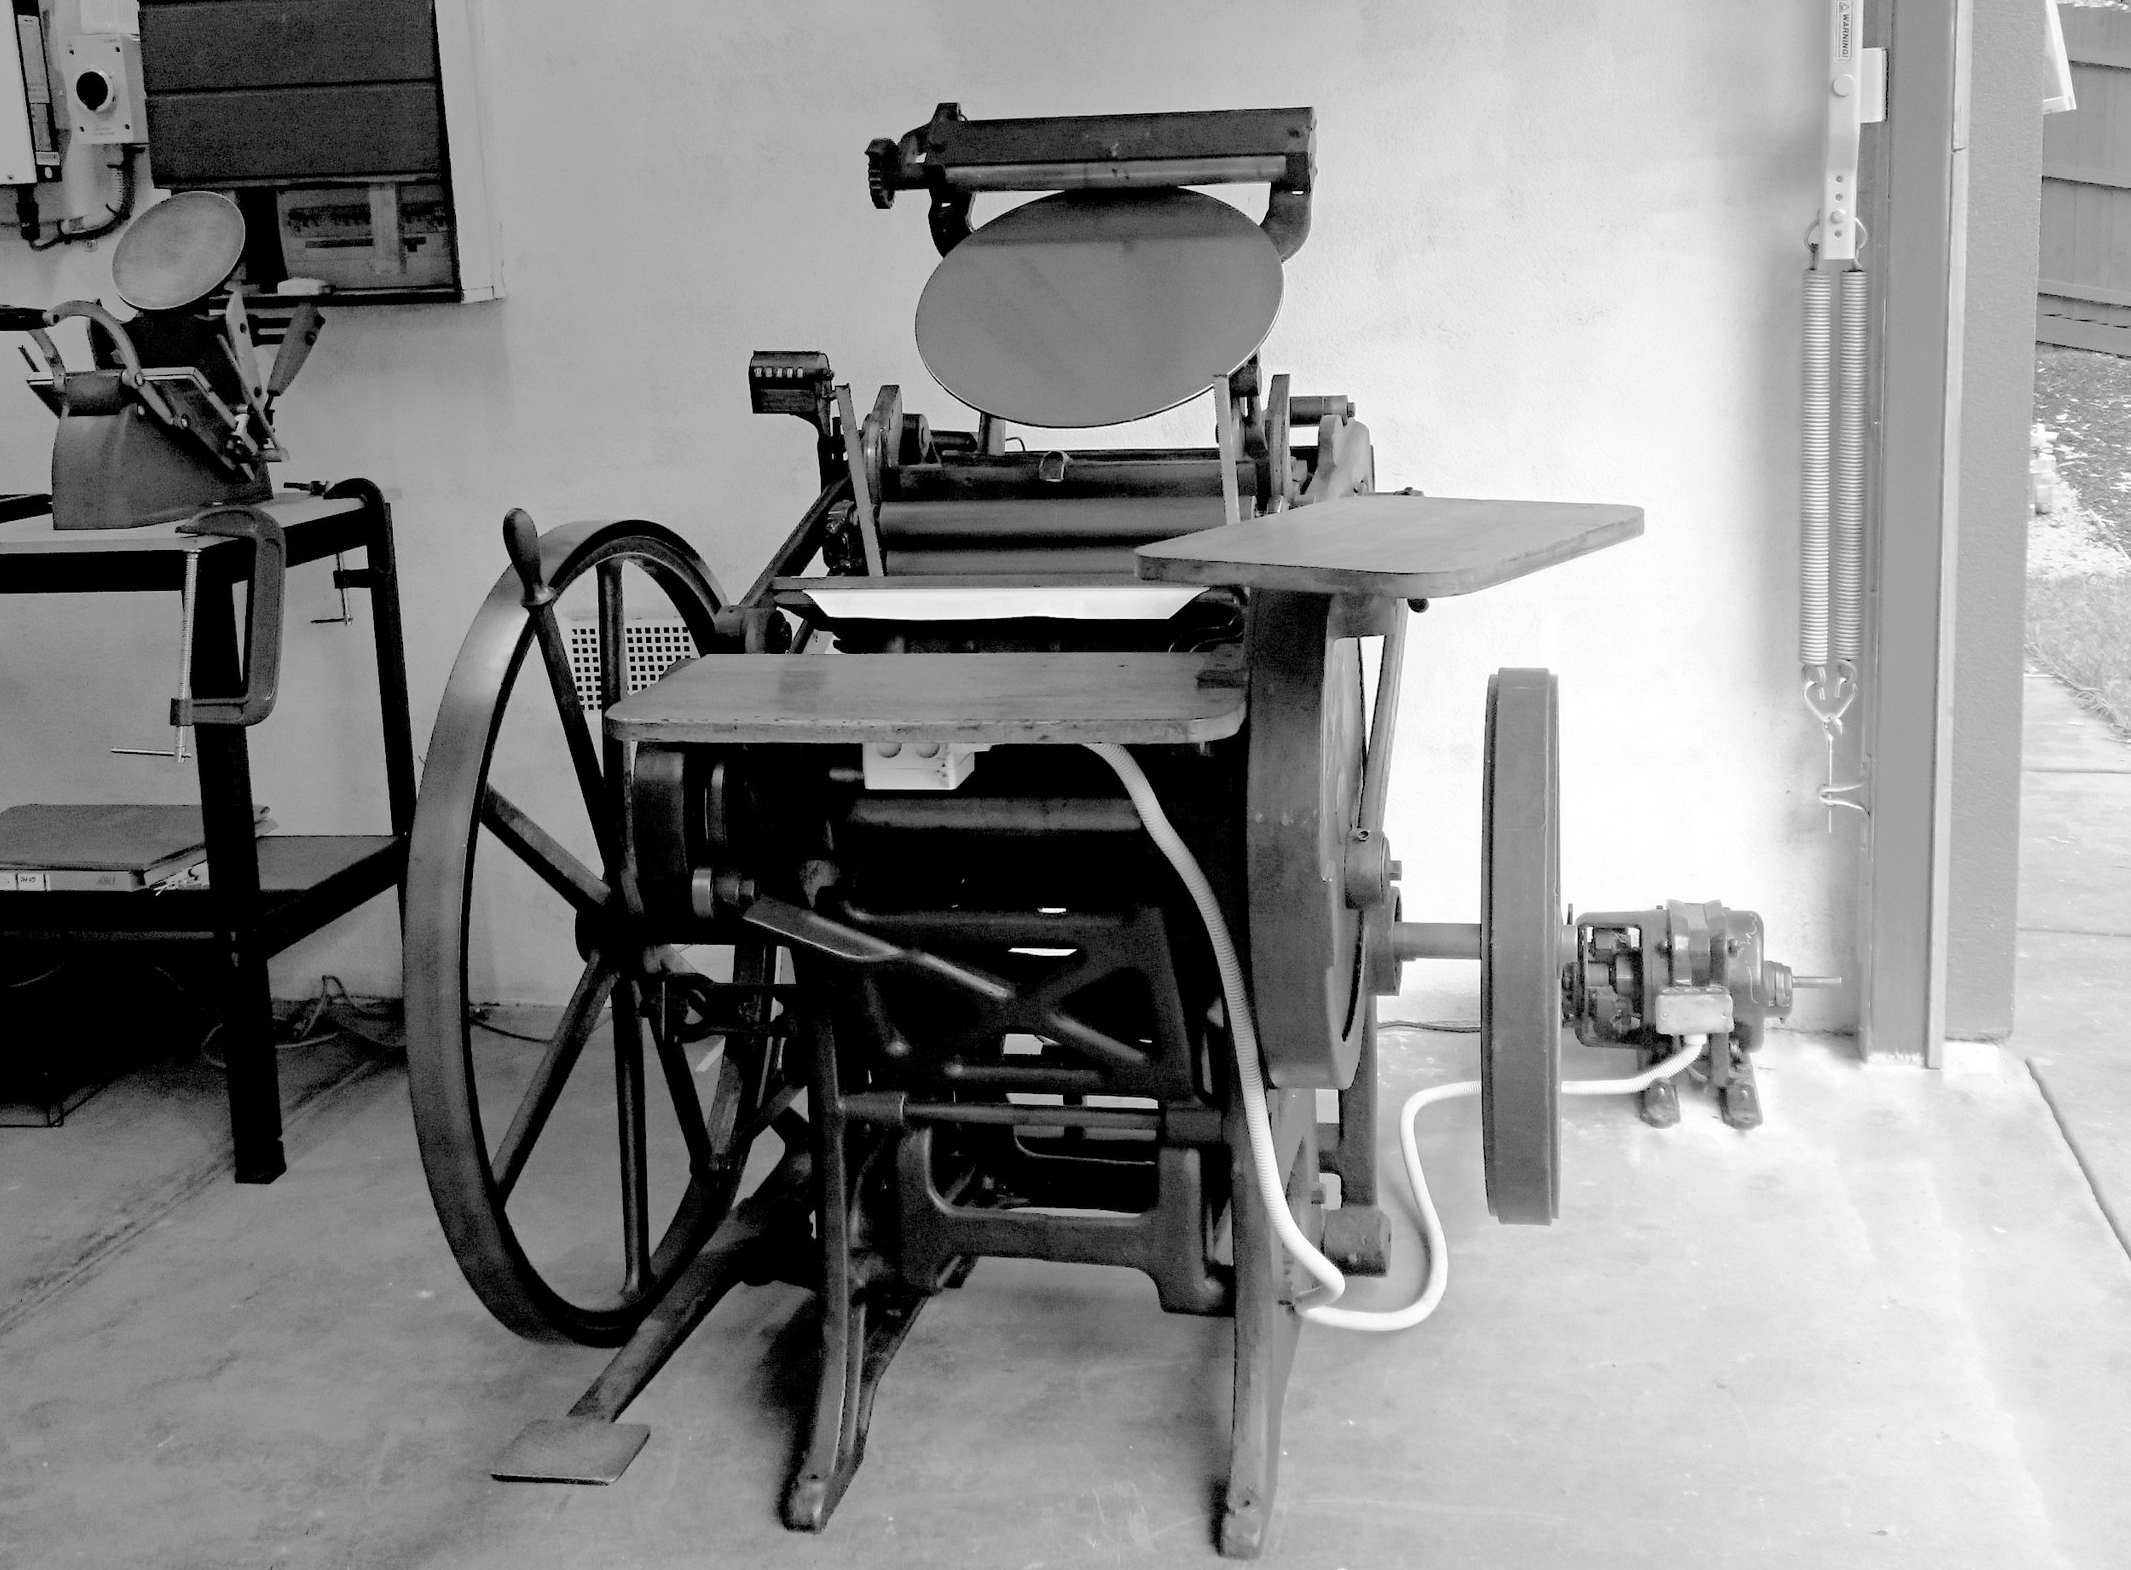 Georgia, the 1925 Chandler and Price Platen Press.